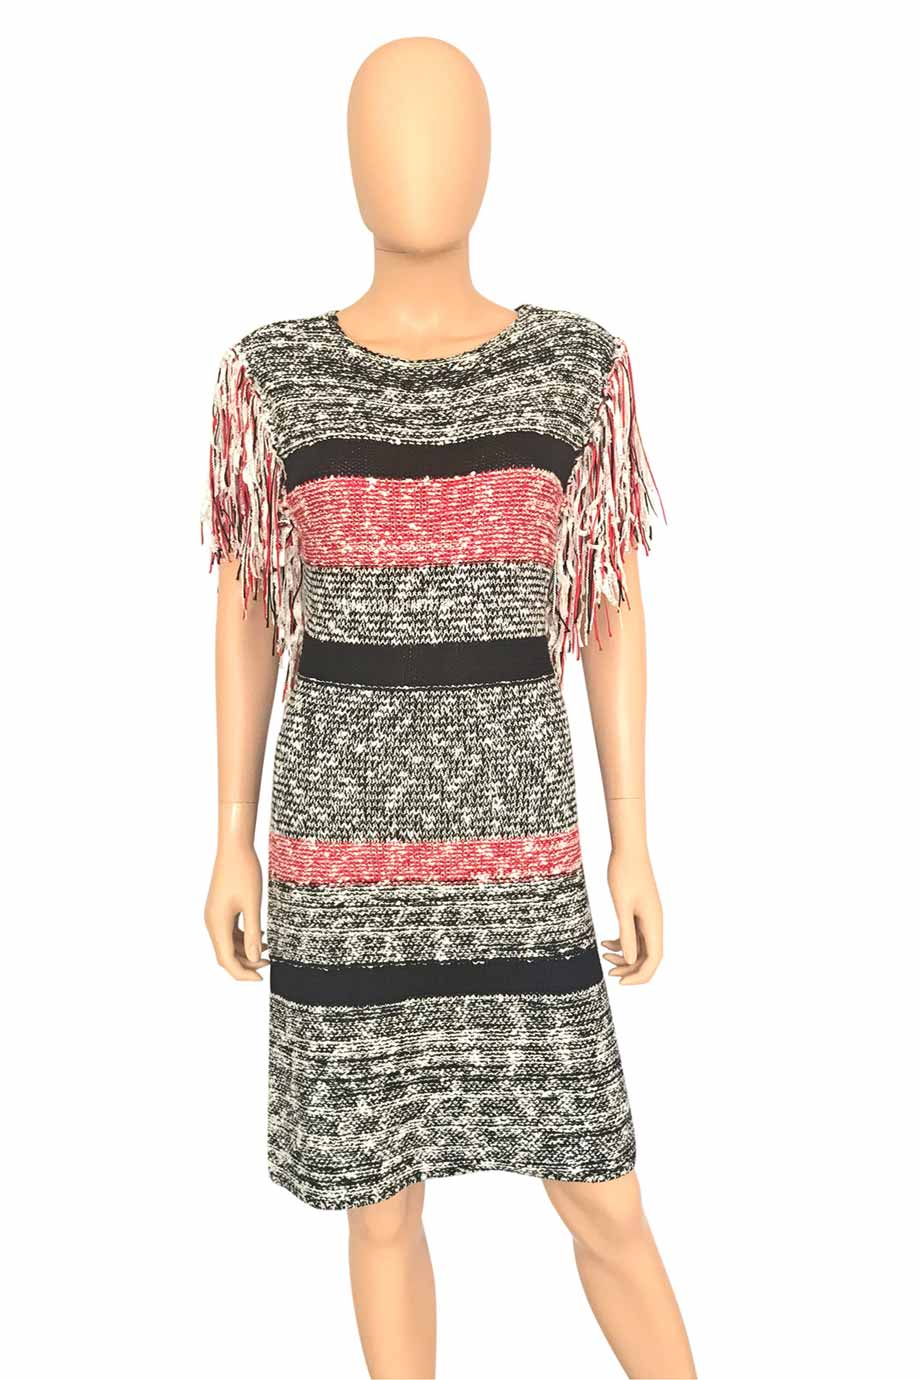 Endless Rose Fringed Red + Black Stripe Sweater Dress / Sz L-Style Therapy